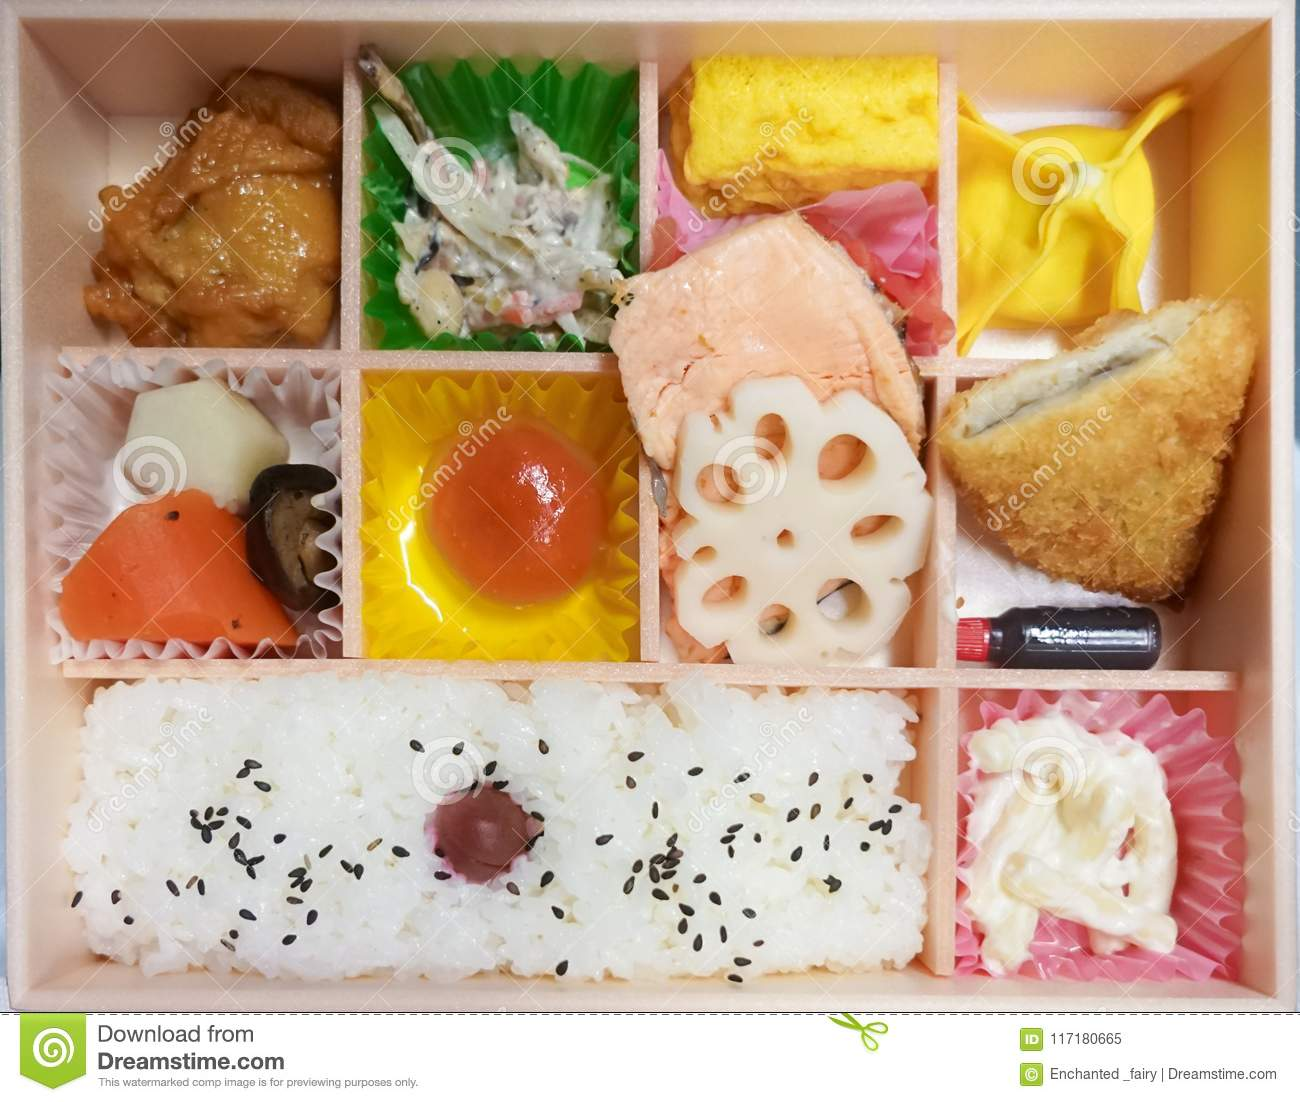 Bento box. Bento is Japanese traditional takeaway lunch box divided into small section with various food and Japanese sweet i